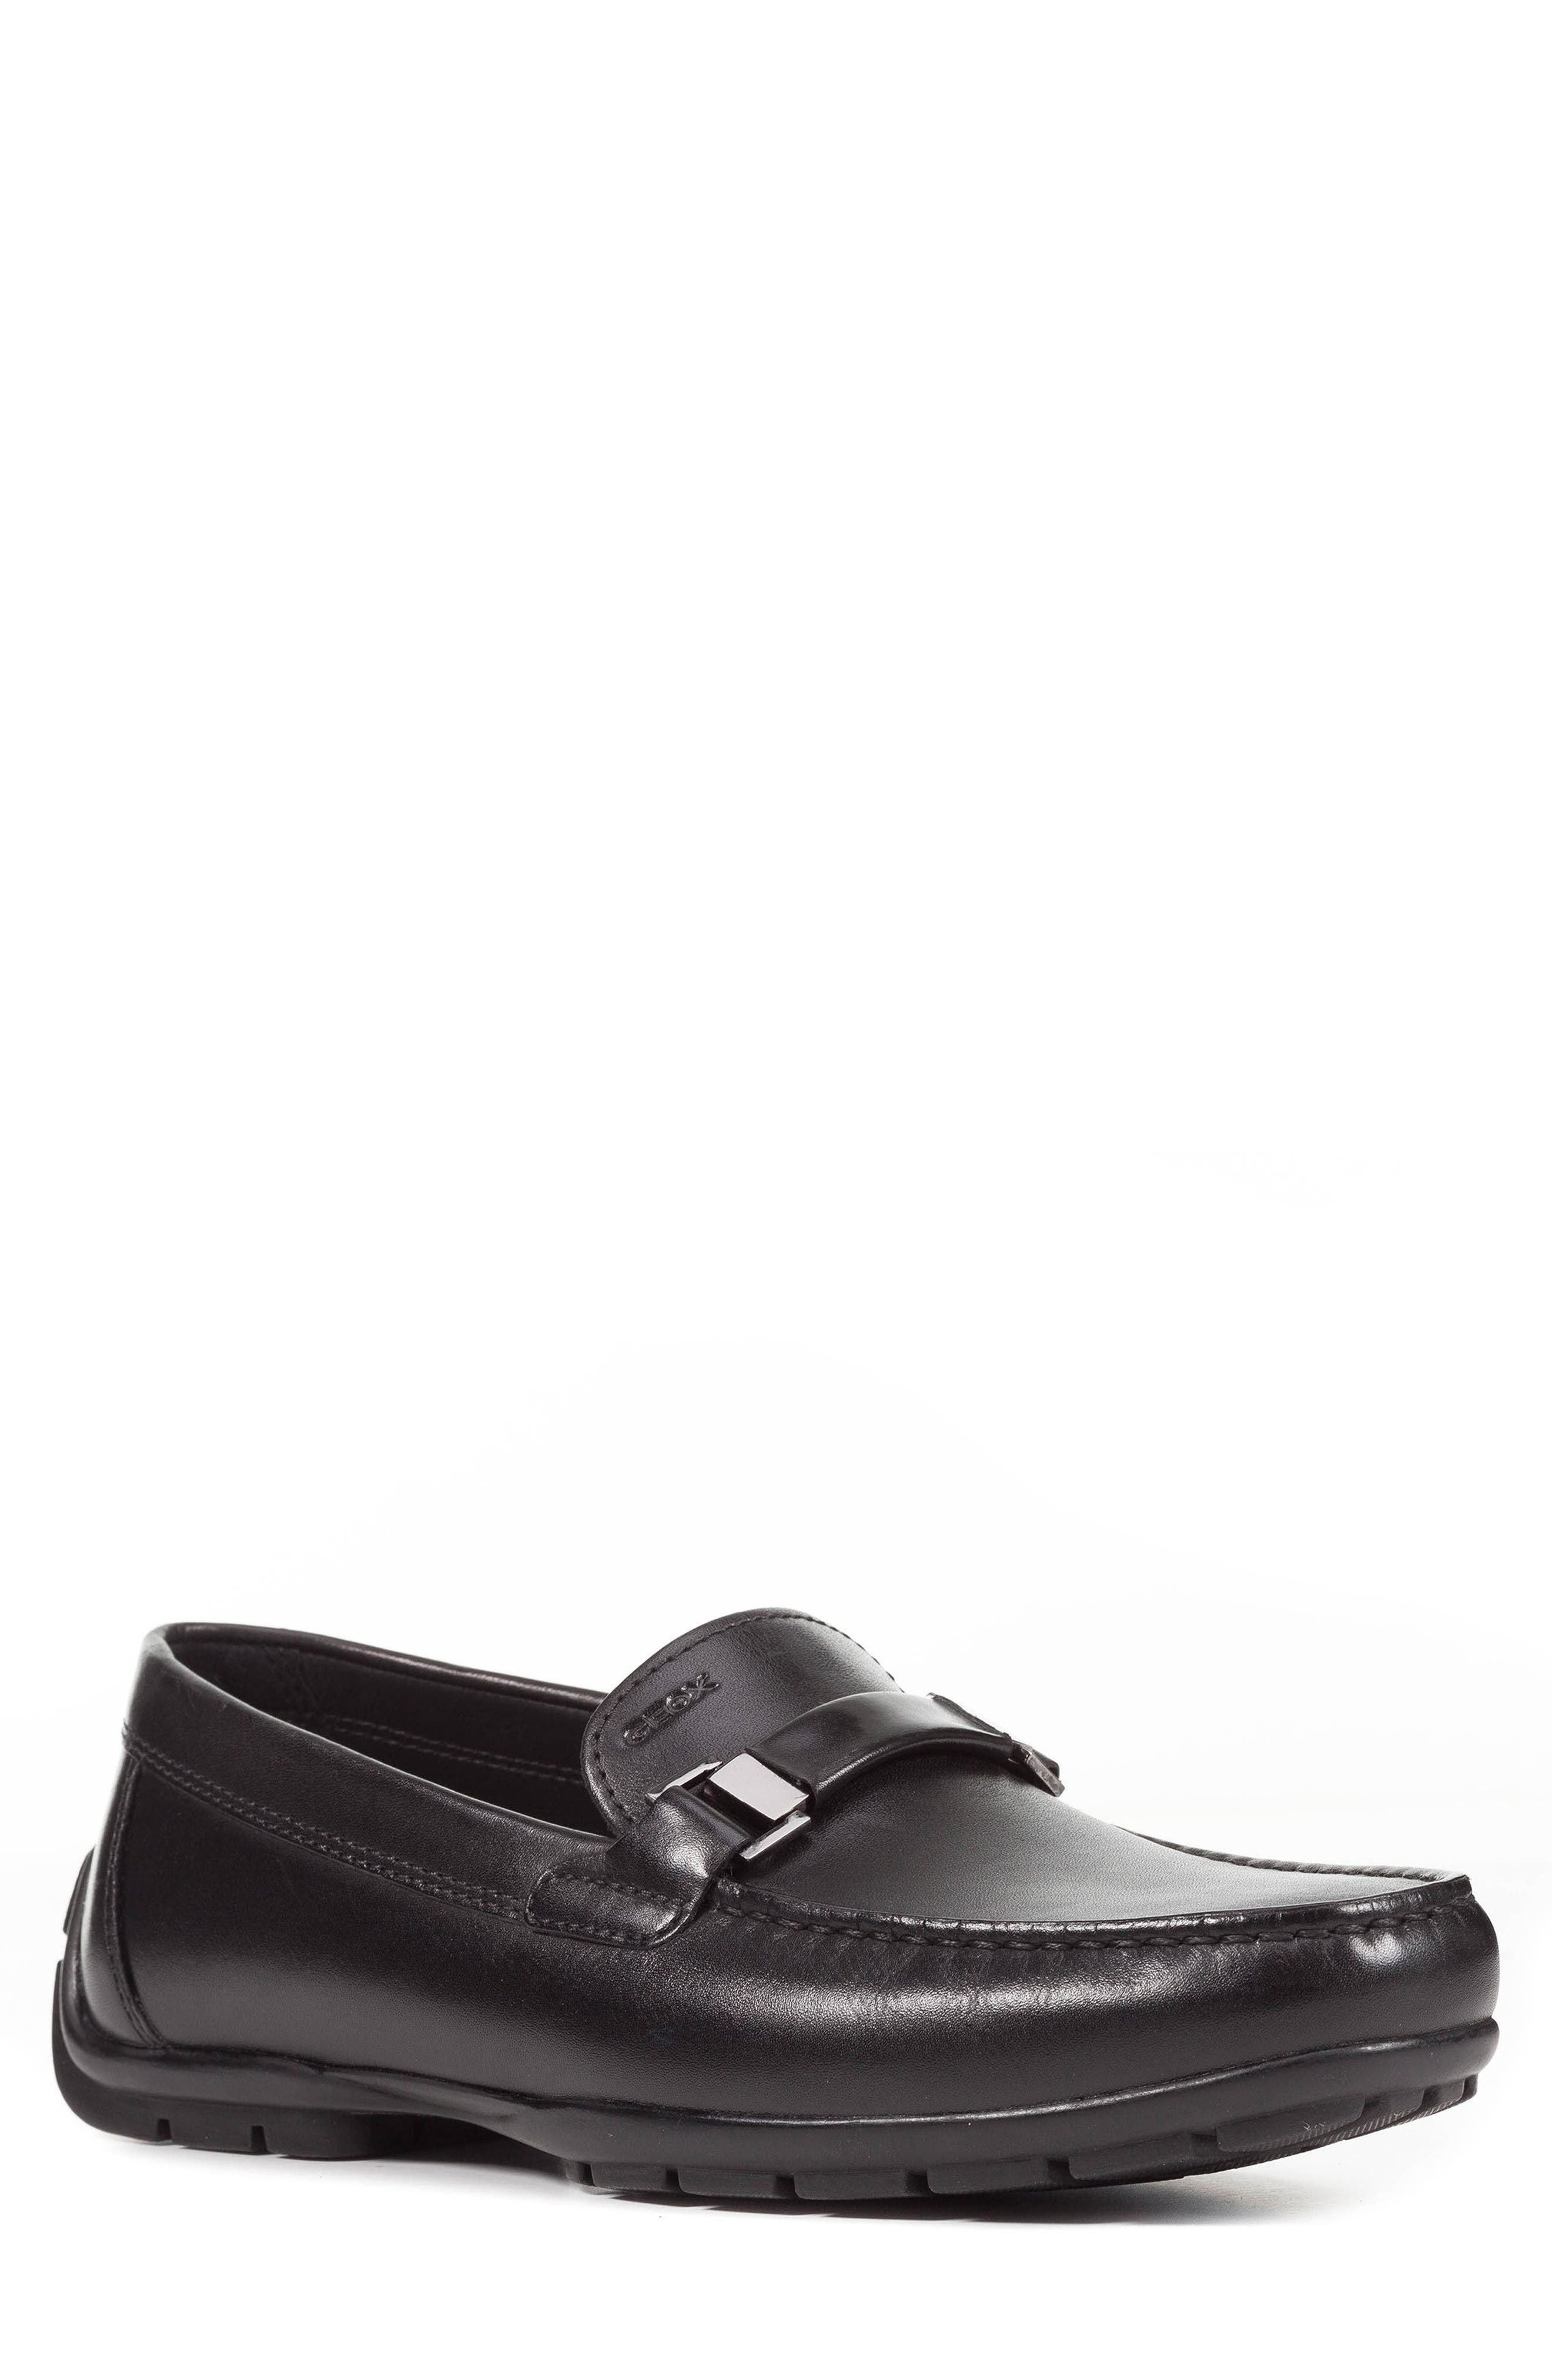 GEOX Moner 2Fit 1 Driving Moccasin, Main, color, BLACK LEATHER